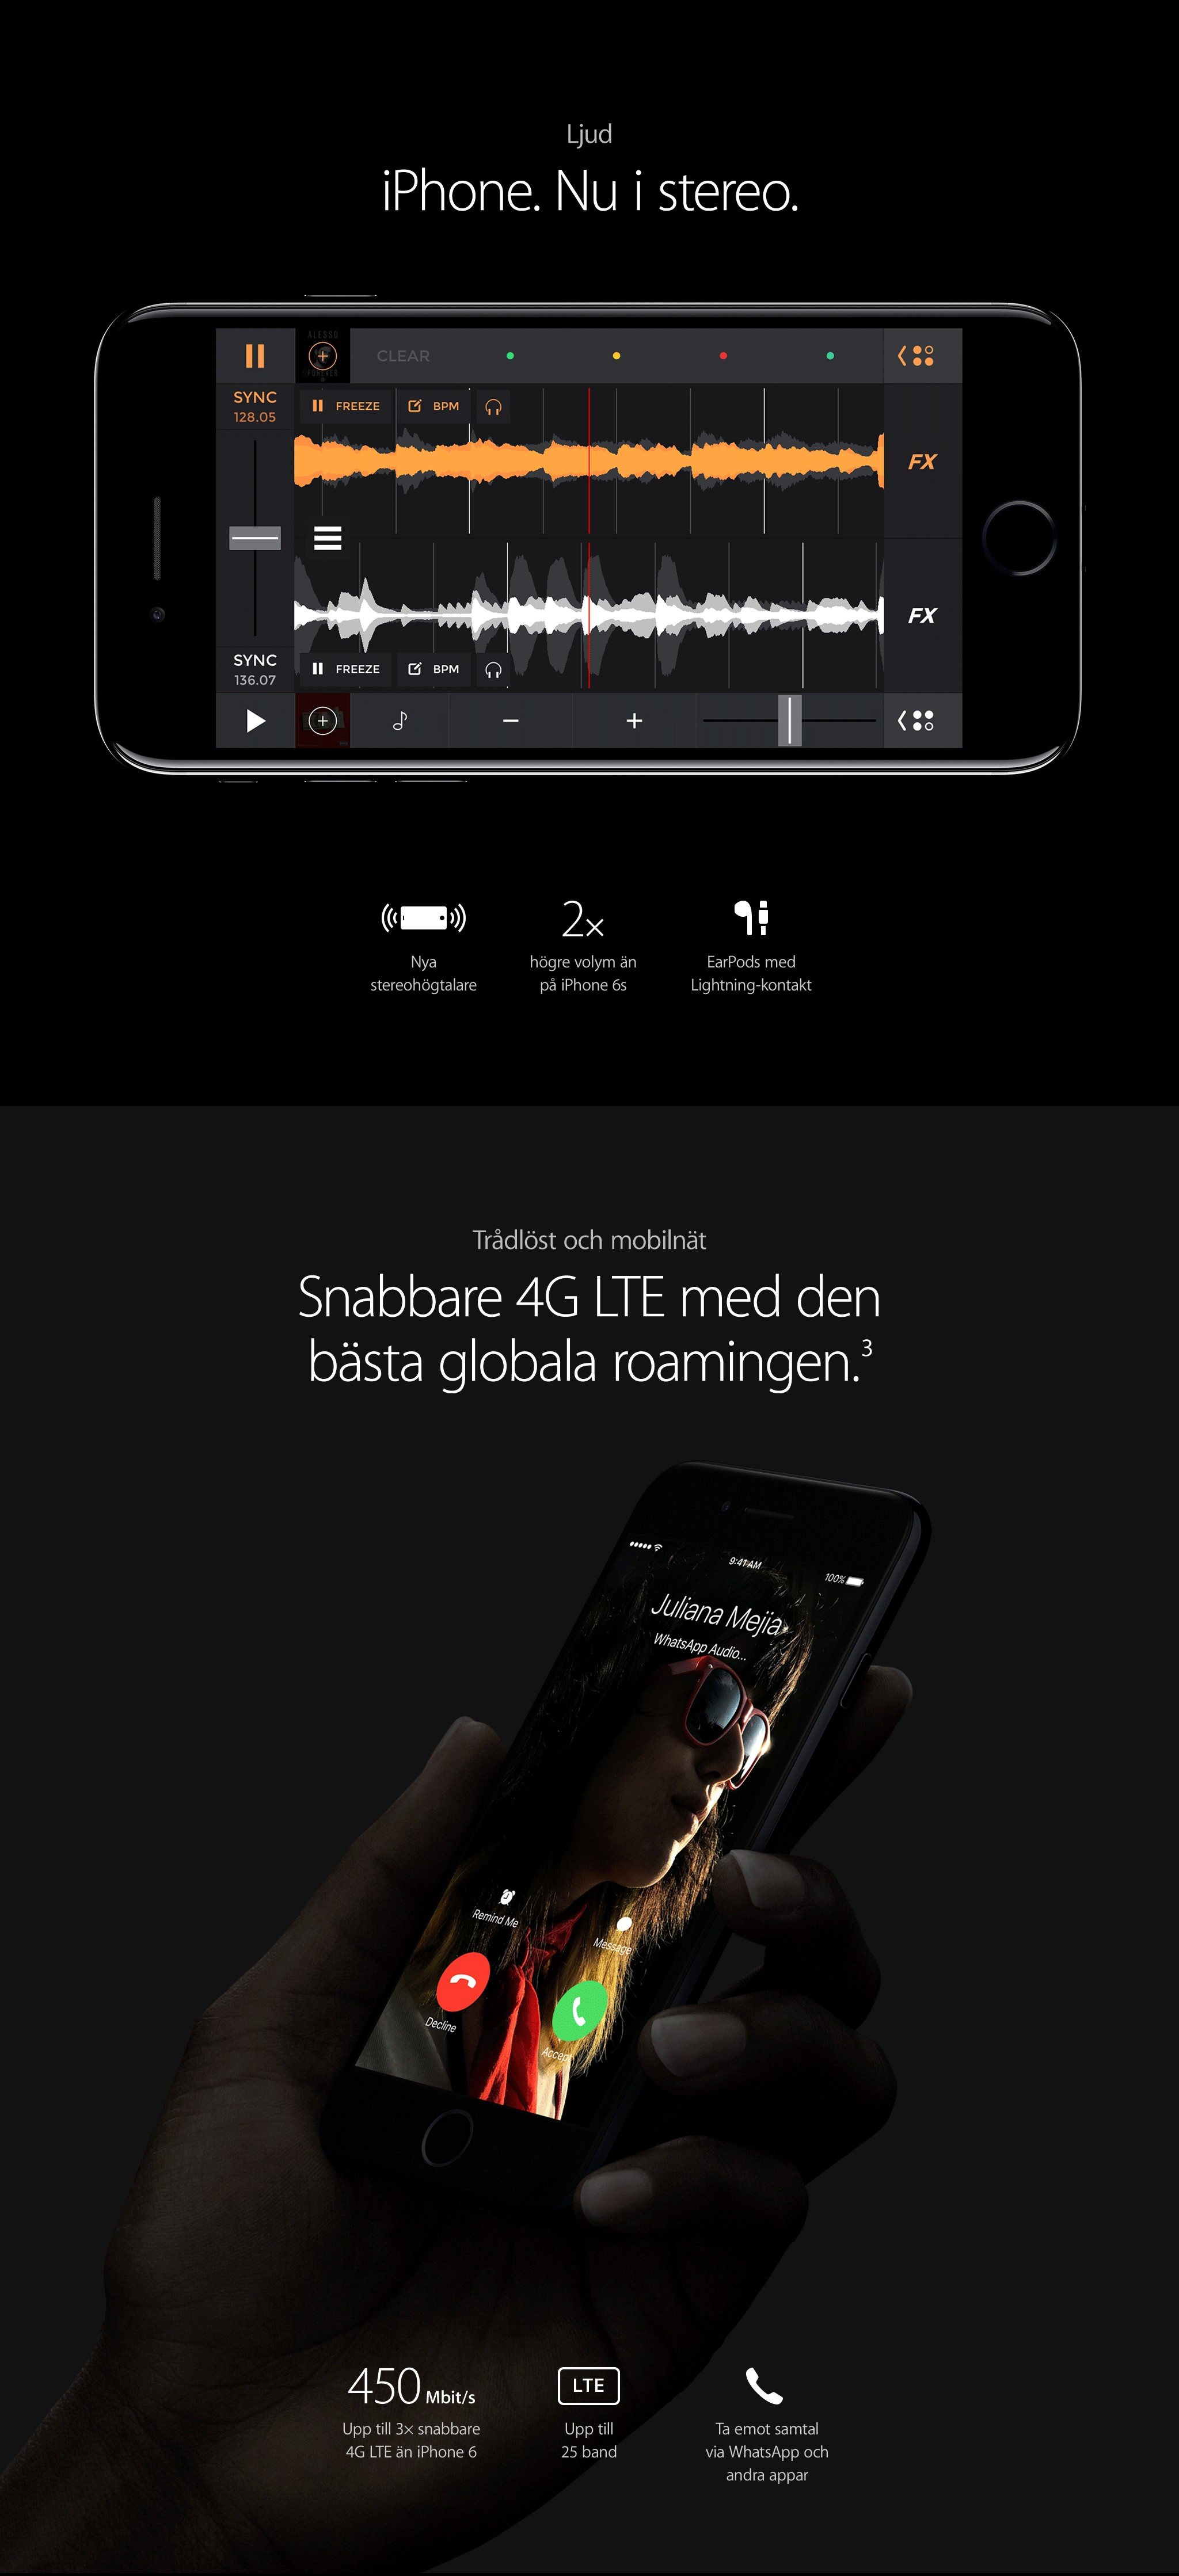 iphone 7 hos telenor